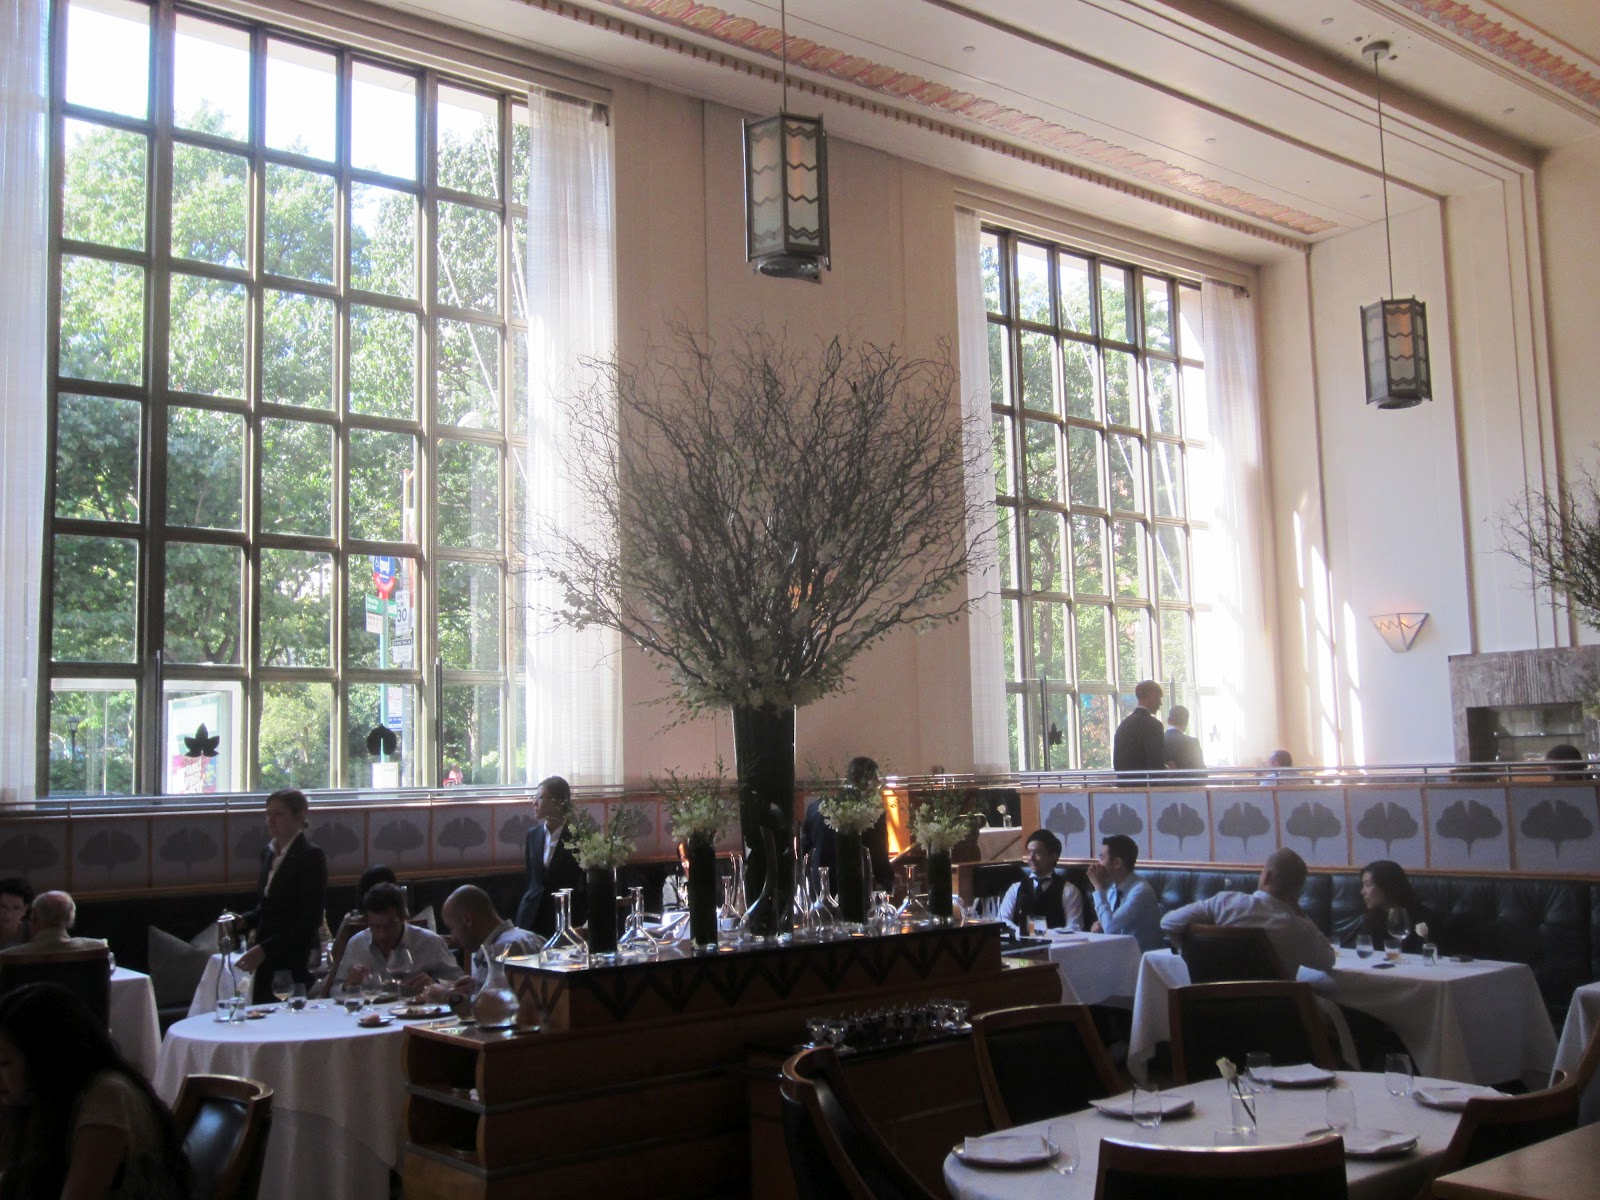 Eleven Madison Park-1 restaurants TOP 10 Best-Looking Restaurants in New York new york city 9 2012 046